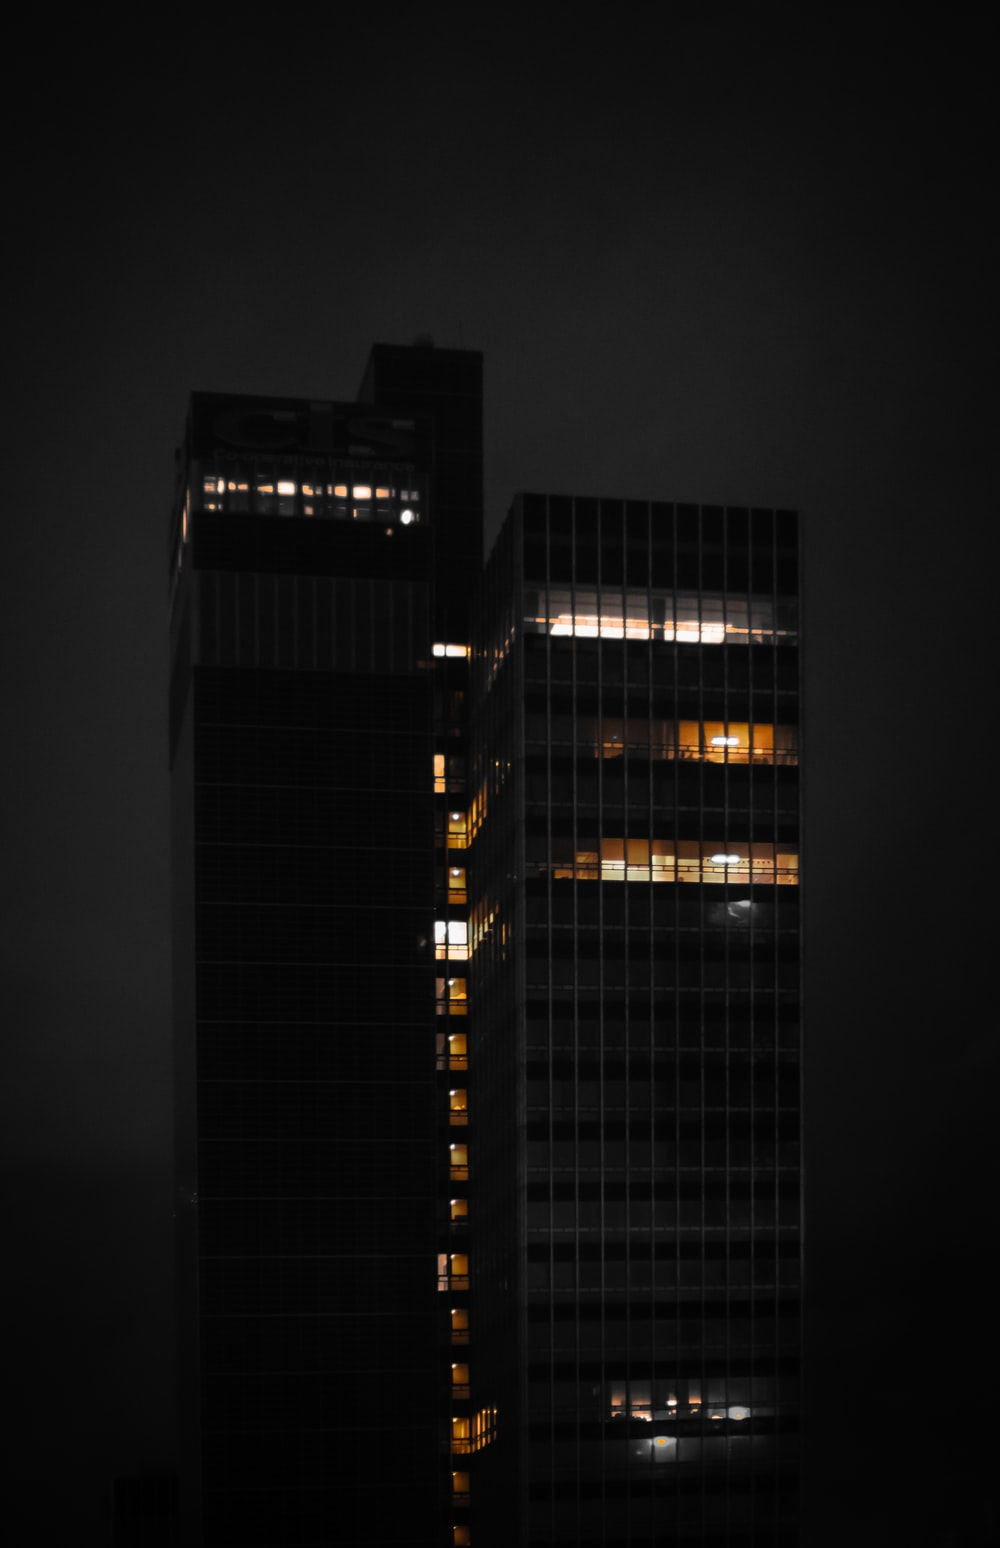 lighted buildings during nighttime